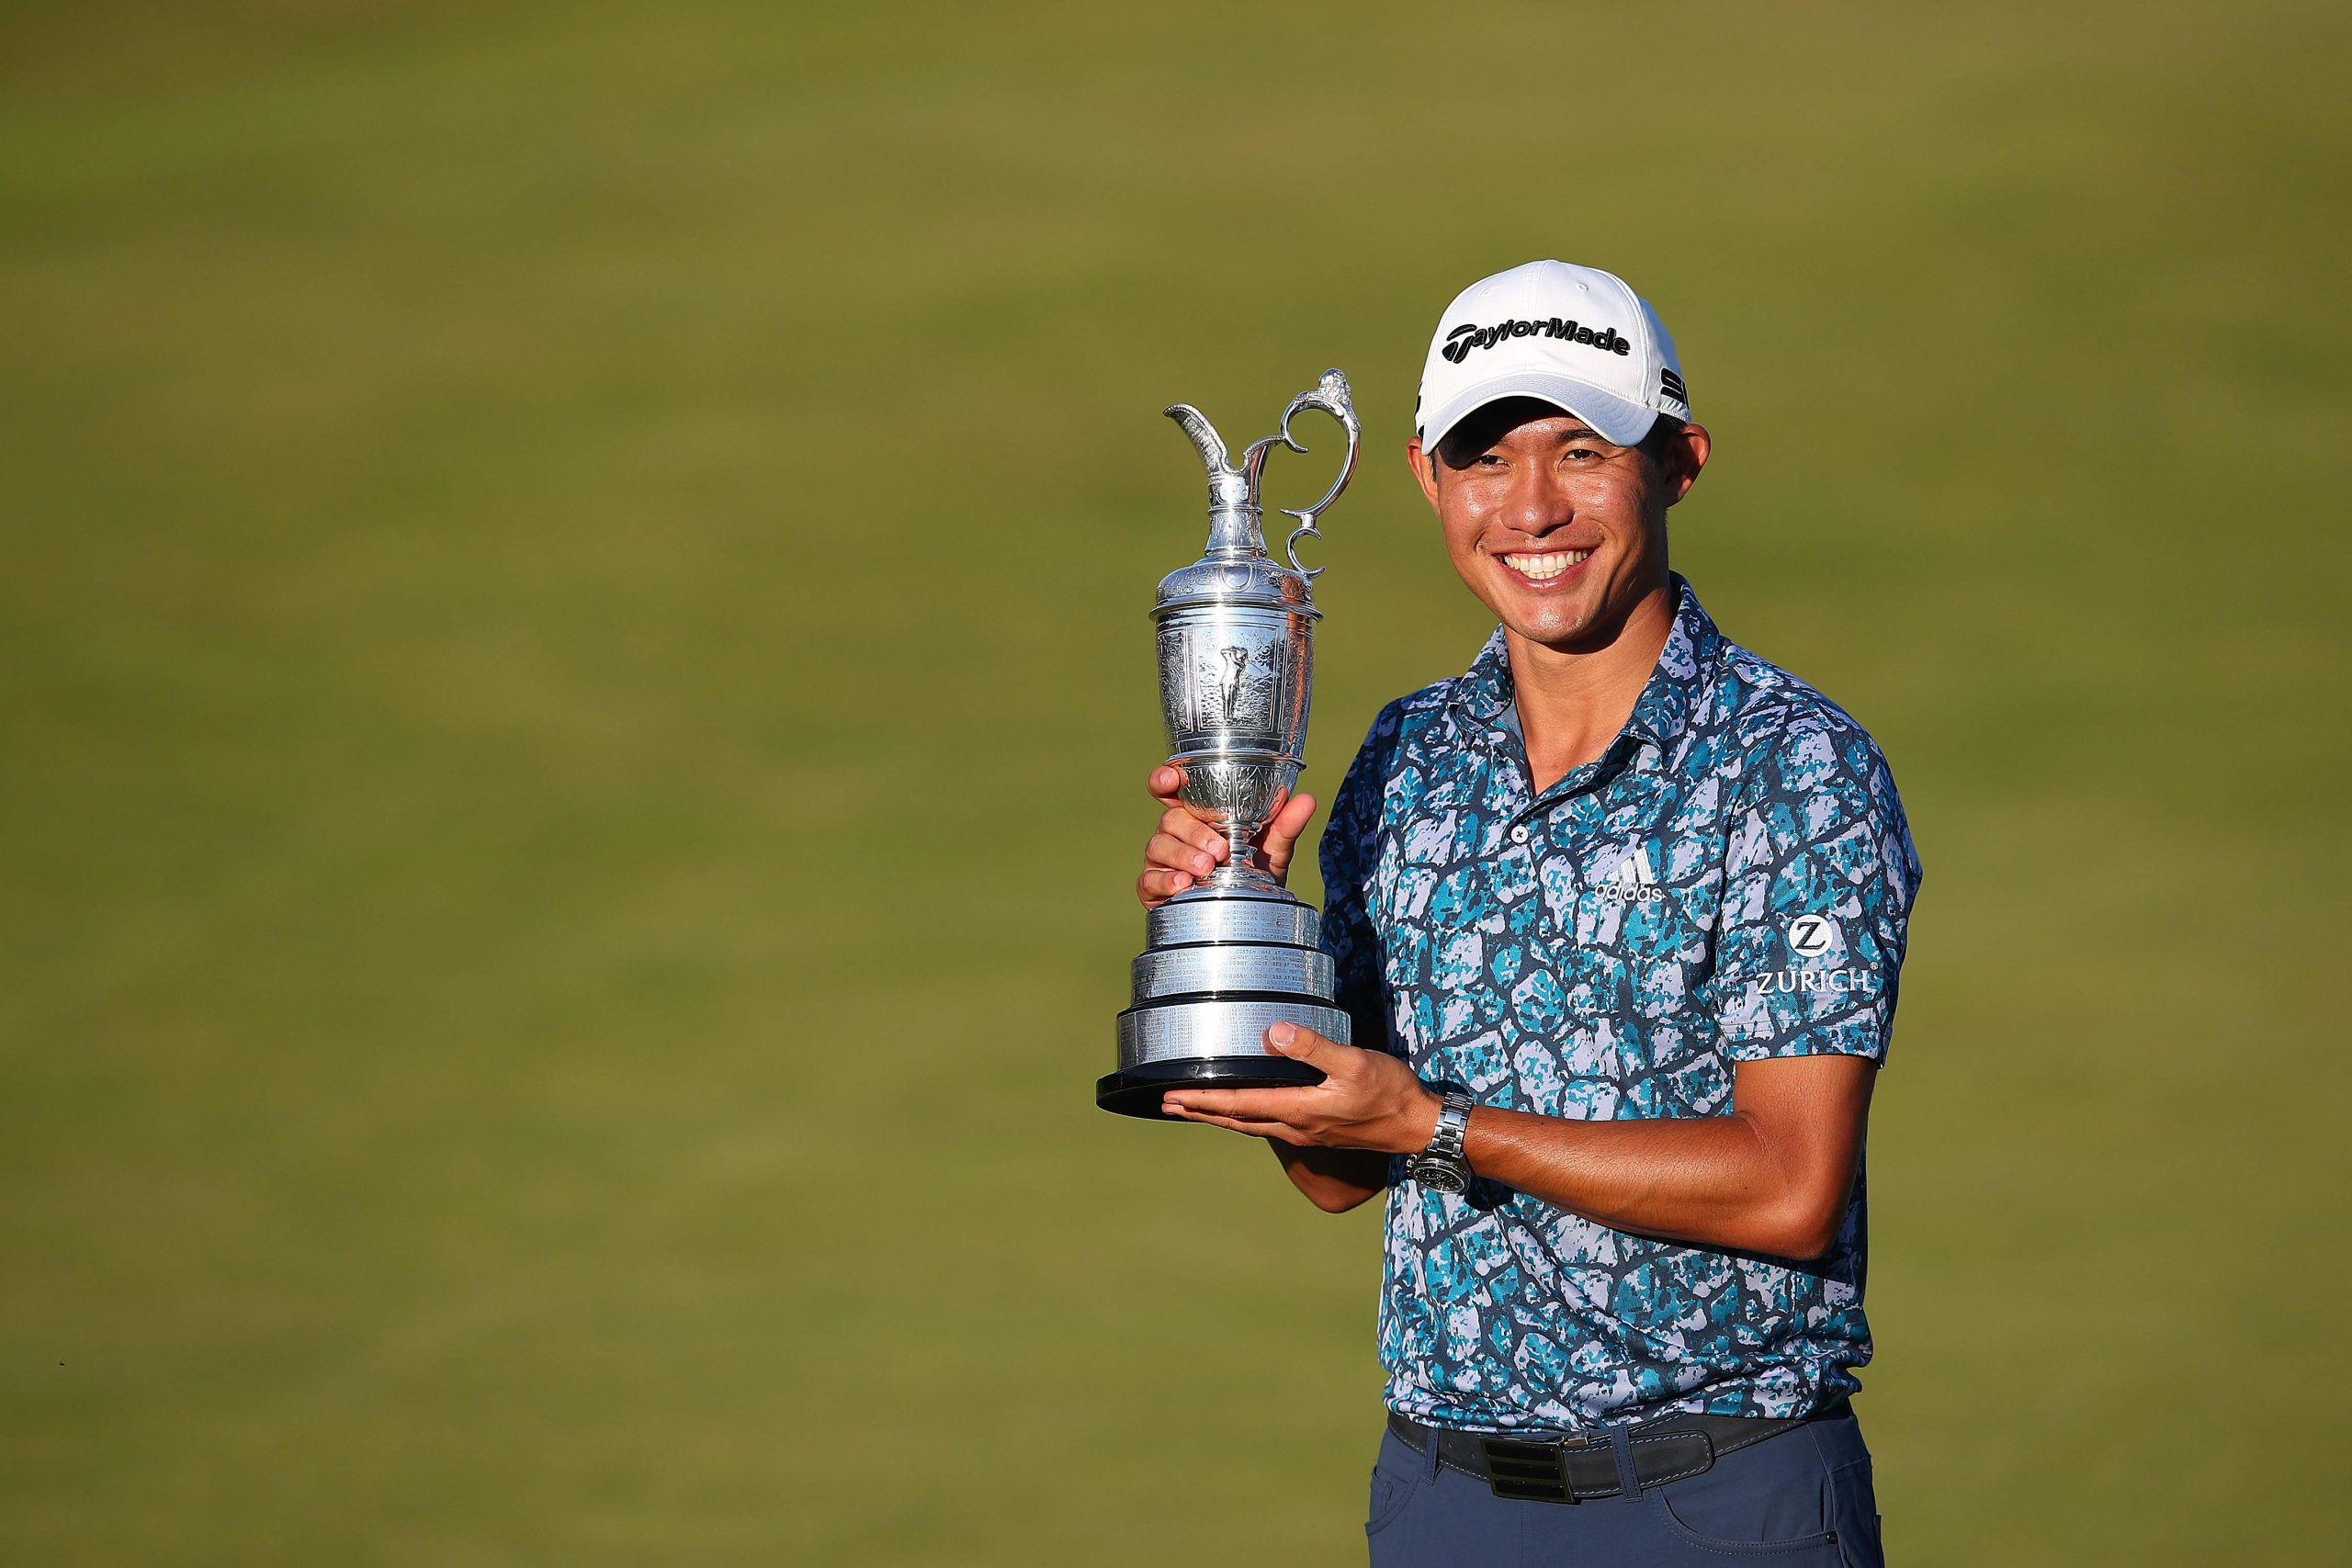 The 149th Open: Collin Morikawa holds off Jordan Spieth to win by two shots on Open debut